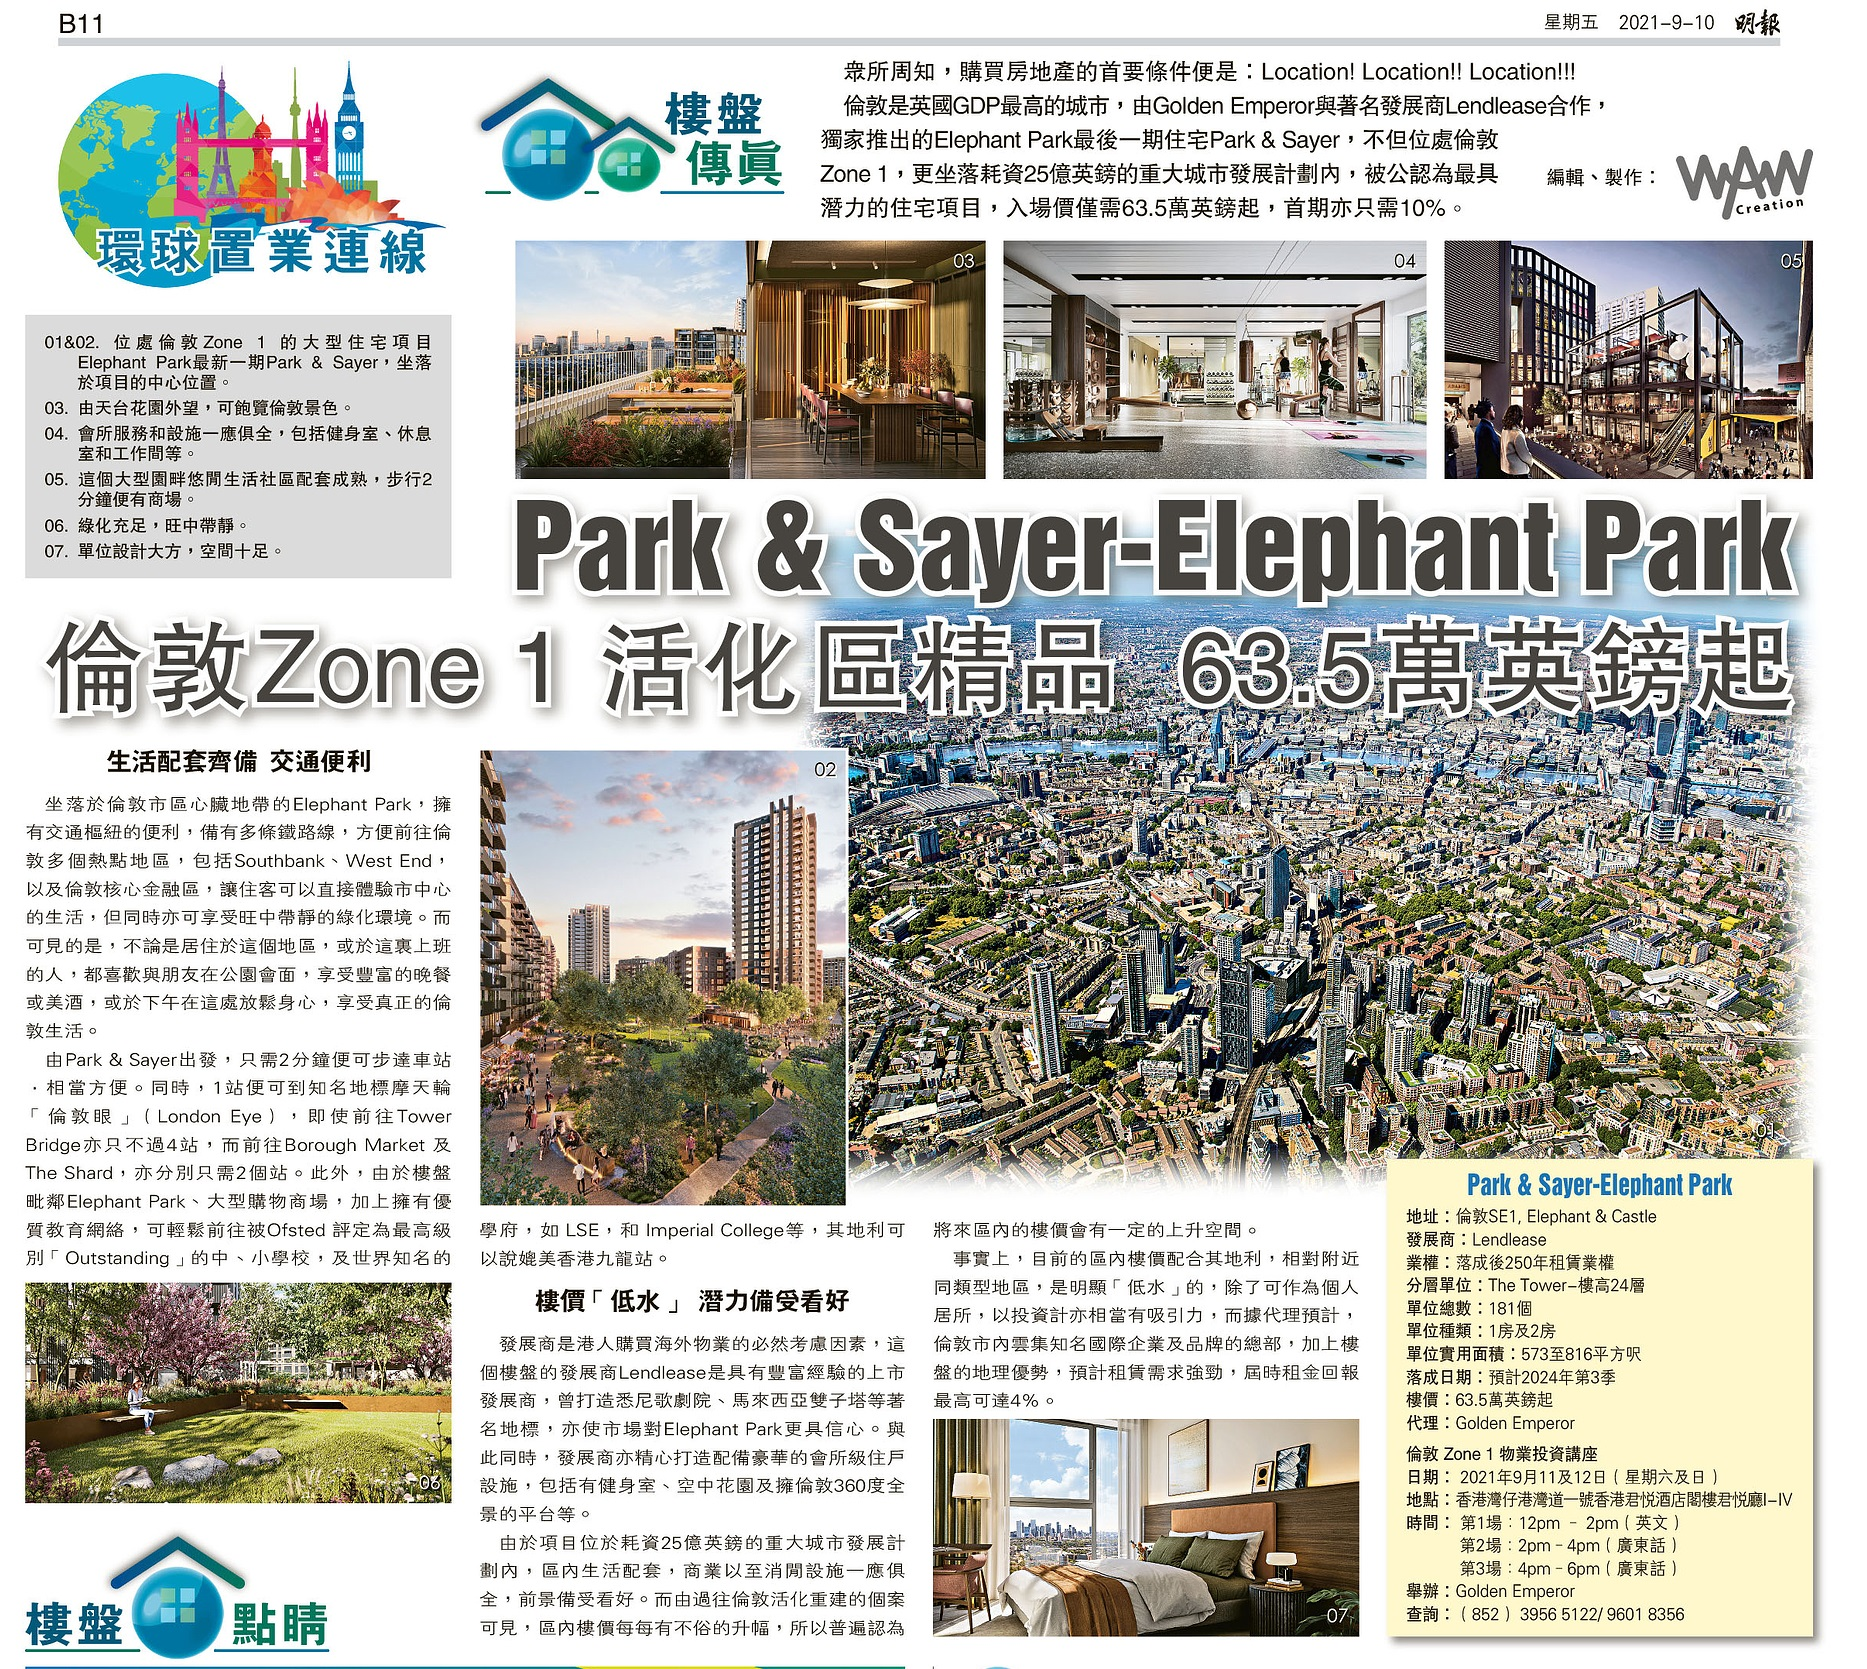 Lendlease's Park & Sayer in London Zone 1 Featured in Ming Pao